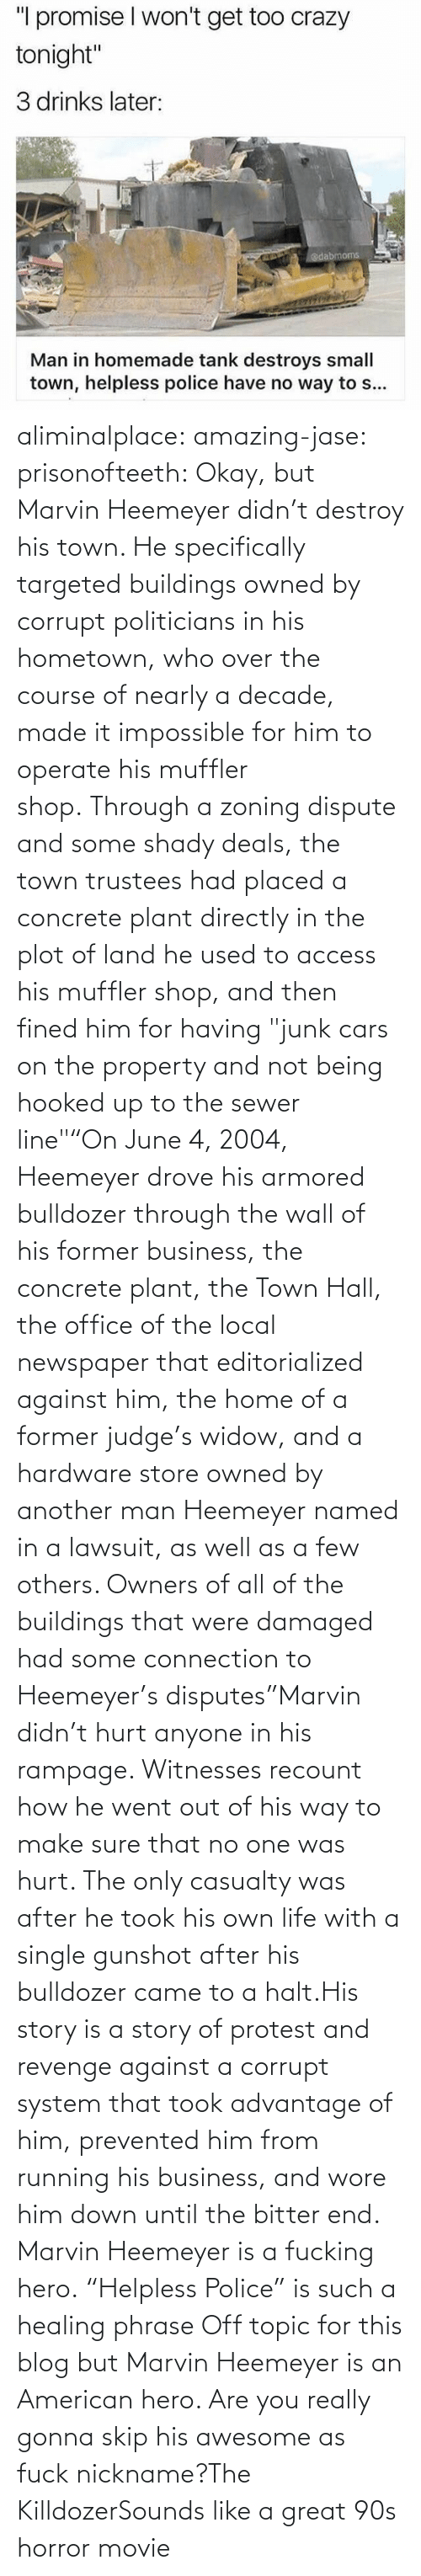 "local: aliminalplace: amazing-jase:  prisonofteeth: Okay, but Marvin Heemeyer didn't destroy his town. He specifically targeted buildings owned by corrupt politicians in his hometown, who over the course of nearly a decade, made it impossible for him to operate his muffler shop. Through a zoning dispute and some shady deals, the town trustees had placed a concrete plant directly in the plot of land he used to access his muffler shop, and then fined him for having ""junk cars on the property and not being hooked up to the sewer line""""On June 4, 2004, Heemeyer drove his armored bulldozer through the wall of his former business, the concrete plant, the Town Hall, the office of the local newspaper that editorialized against him, the home of a former judge's widow, and a hardware store owned by another man Heemeyer named in a lawsuit, as well as a few others. Owners of all of the buildings that were damaged had some connection to Heemeyer's disputes""Marvin didn't hurt anyone in his rampage. Witnesses recount how he went out of his way to make sure that no one was hurt. The only casualty was after he took his own life with a single gunshot after his bulldozer came to a halt.His story is a story of protest and revenge against a corrupt system that took advantage of him, prevented him from running his business, and wore him down until the bitter end. Marvin Heemeyer is a fucking hero. ""Helpless Police"" is such a healing phrase    Off topic for this blog but Marvin Heemeyer is an American hero.     Are you really gonna skip his awesome as fuck nickname?The KilldozerSounds like a great 90s horror movie"